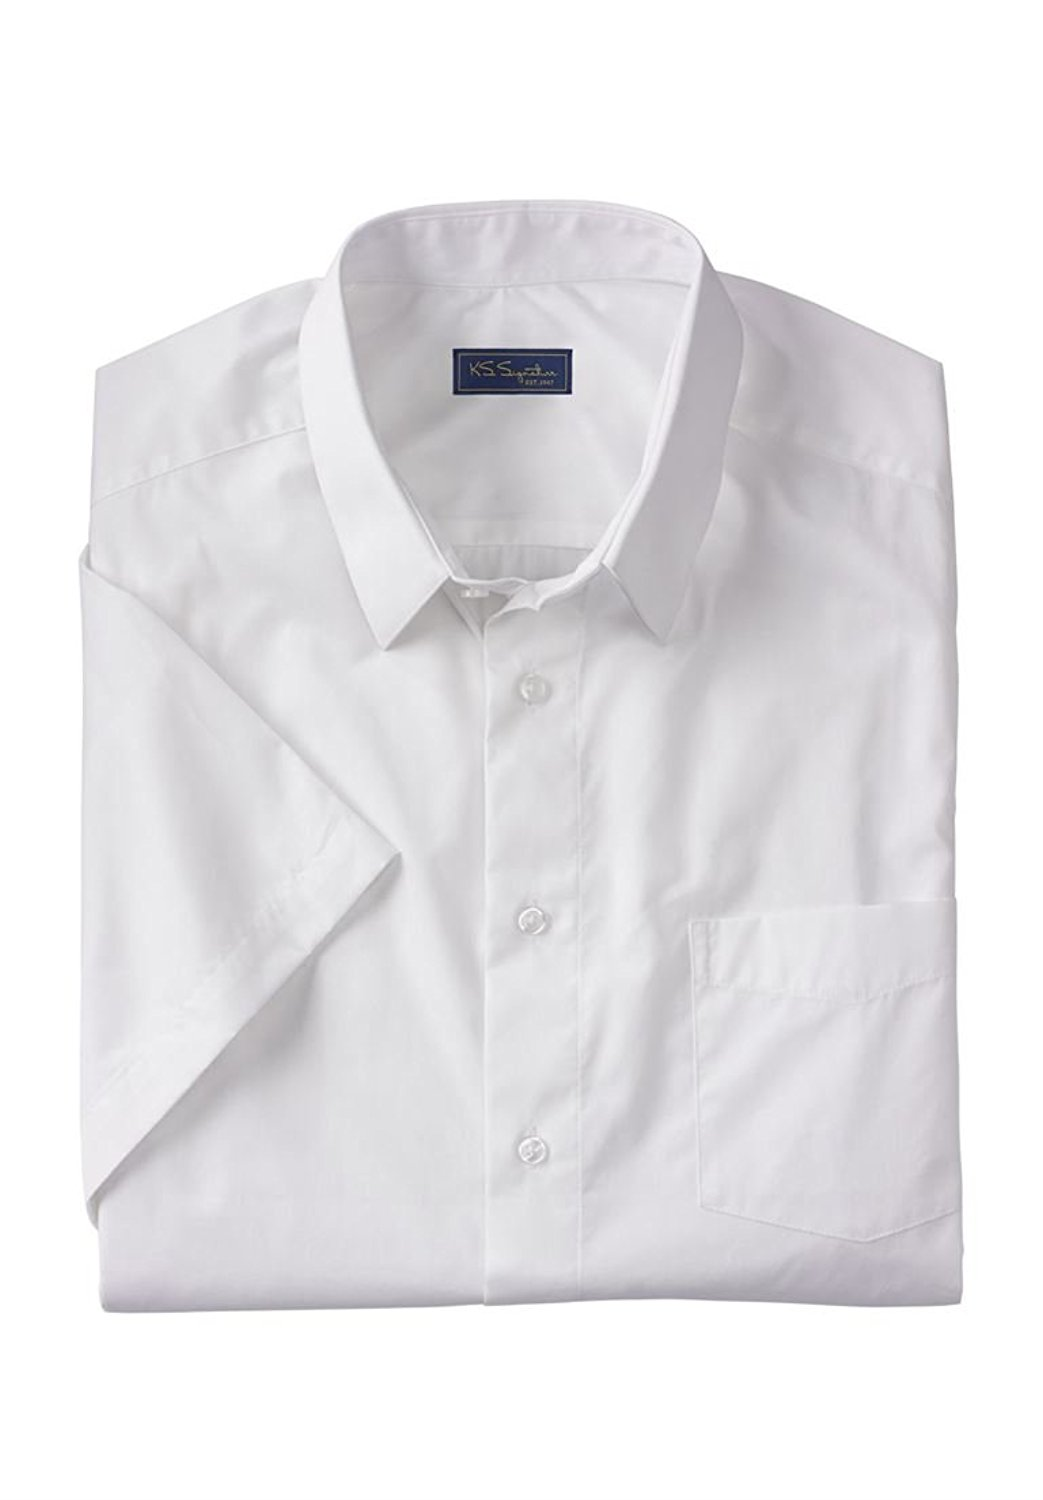 5a9eee259af2 Get Quotations · Kings' Court Men's Big & Tall No Hassle Short-Sleeve Dress  Shirt, White